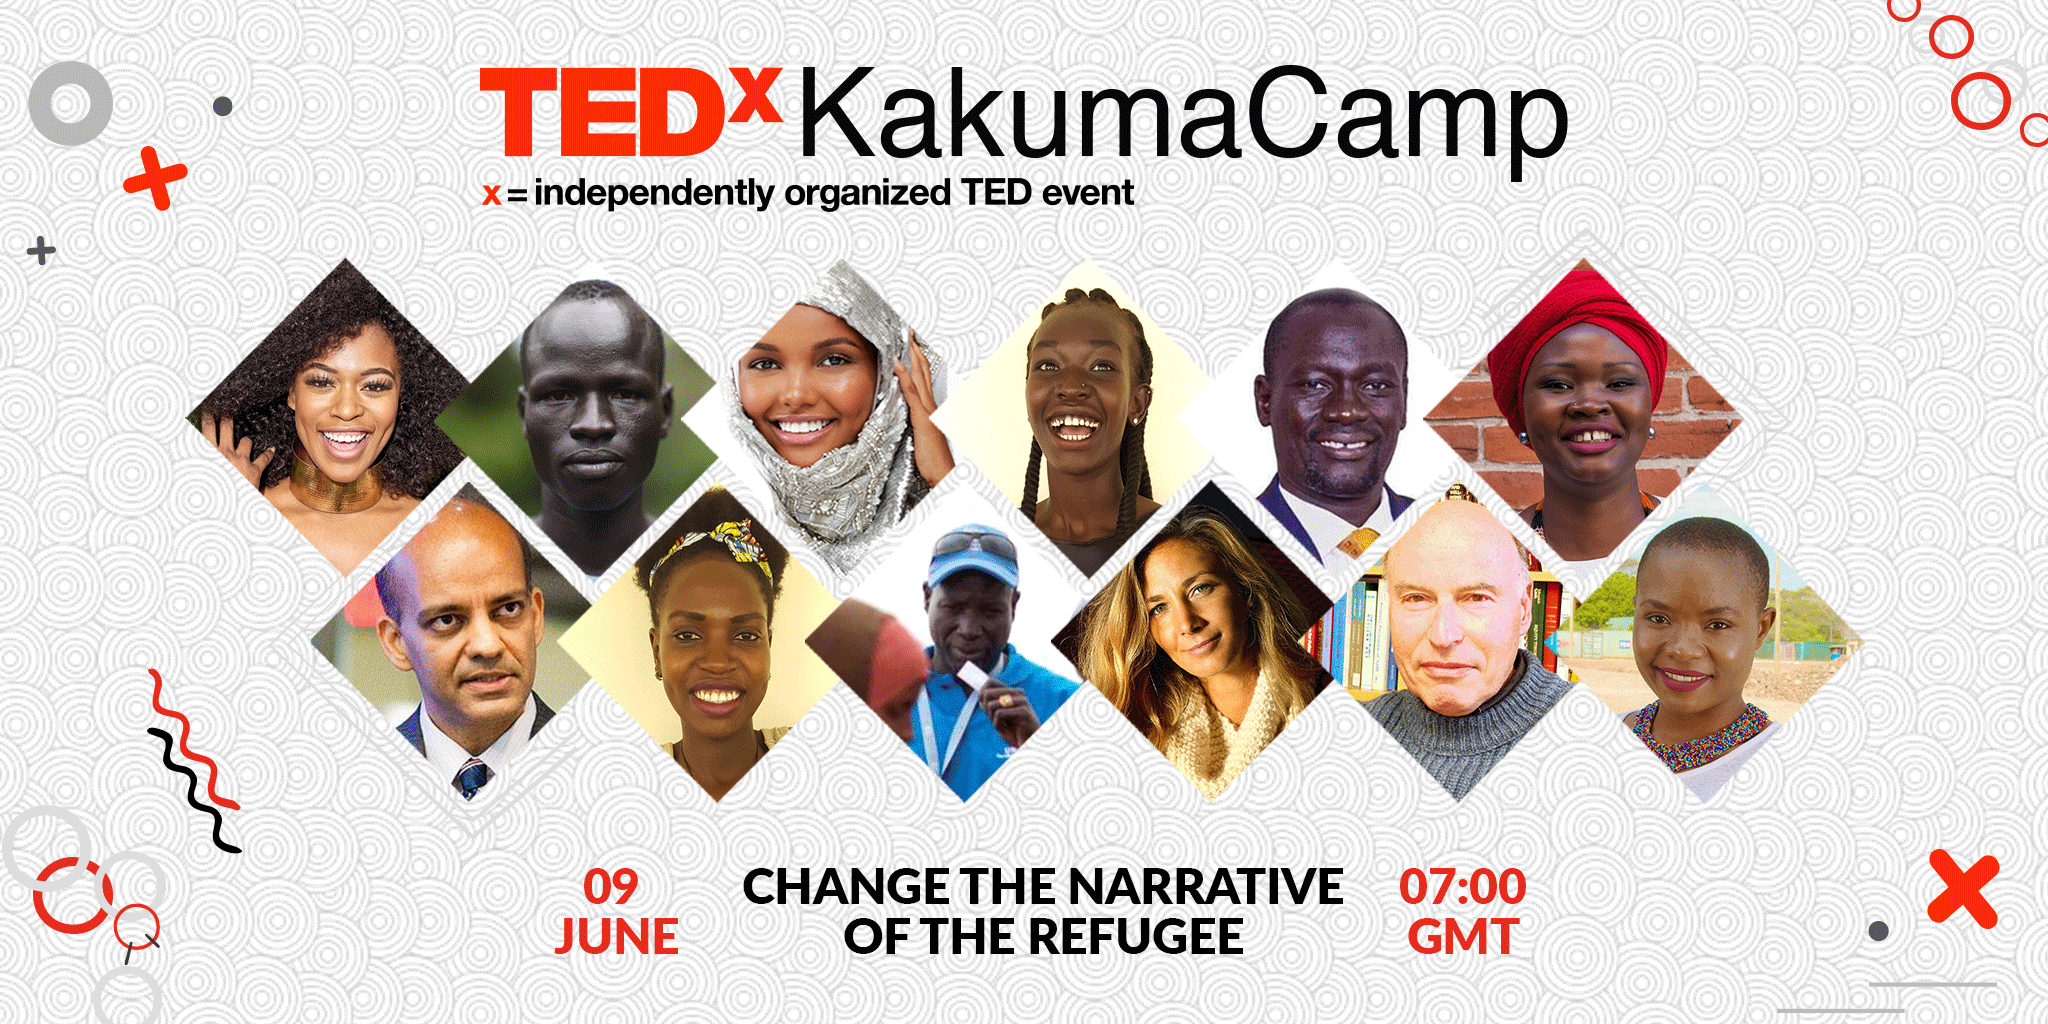 Join the worlds first ever tedx event from a refugee camp   watch live on 9 june ca1f5de7 fb45 4092 a236 7df8e2763515